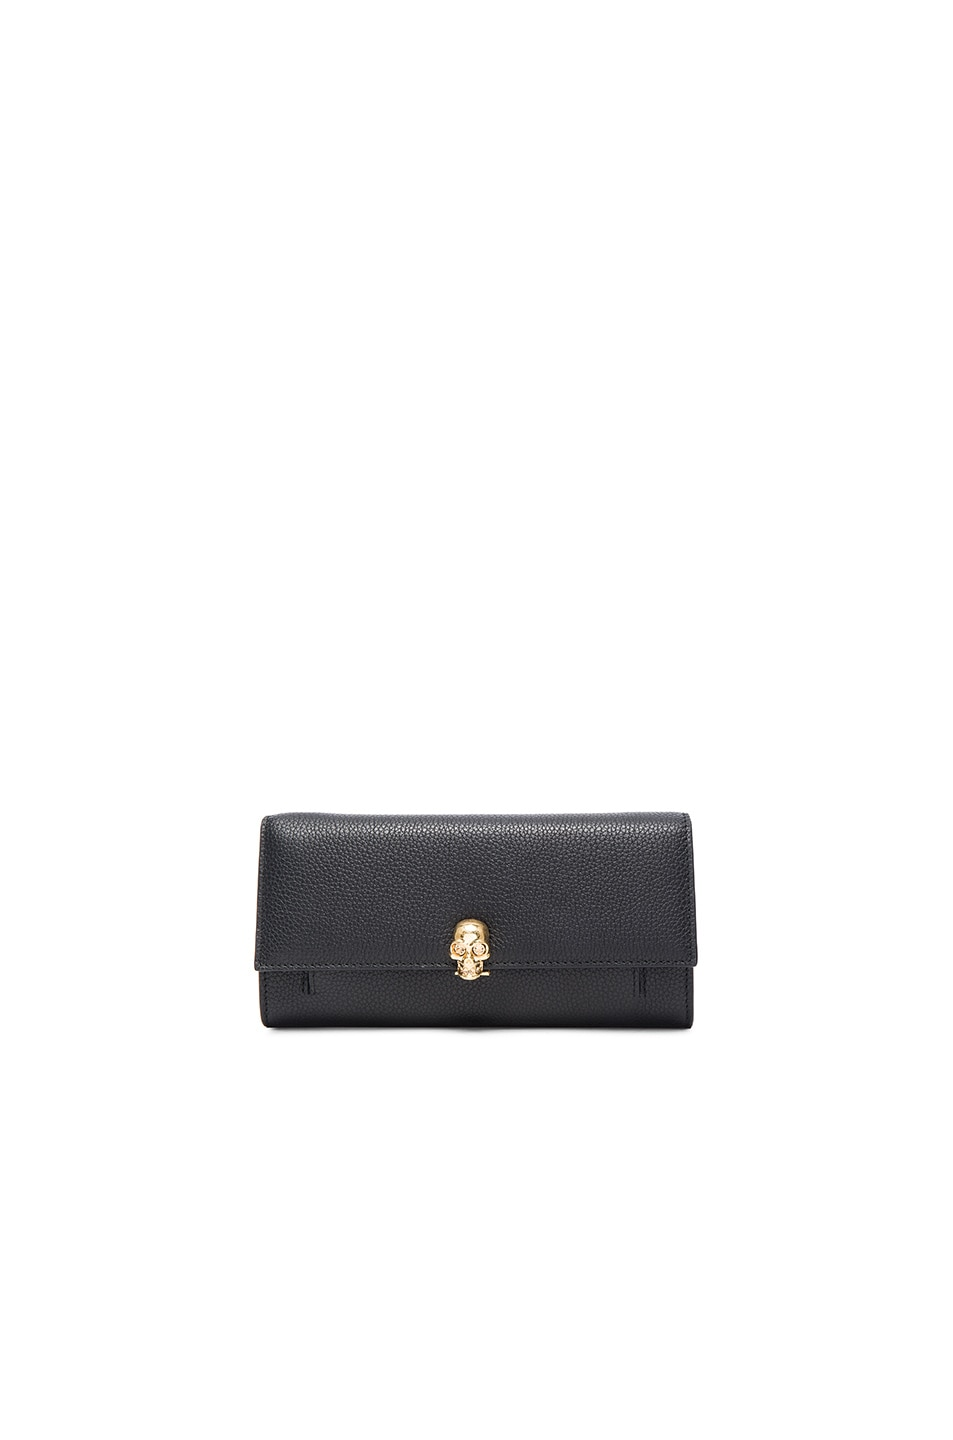 Image 1 of Alexander McQueen Chain Wallet in Black